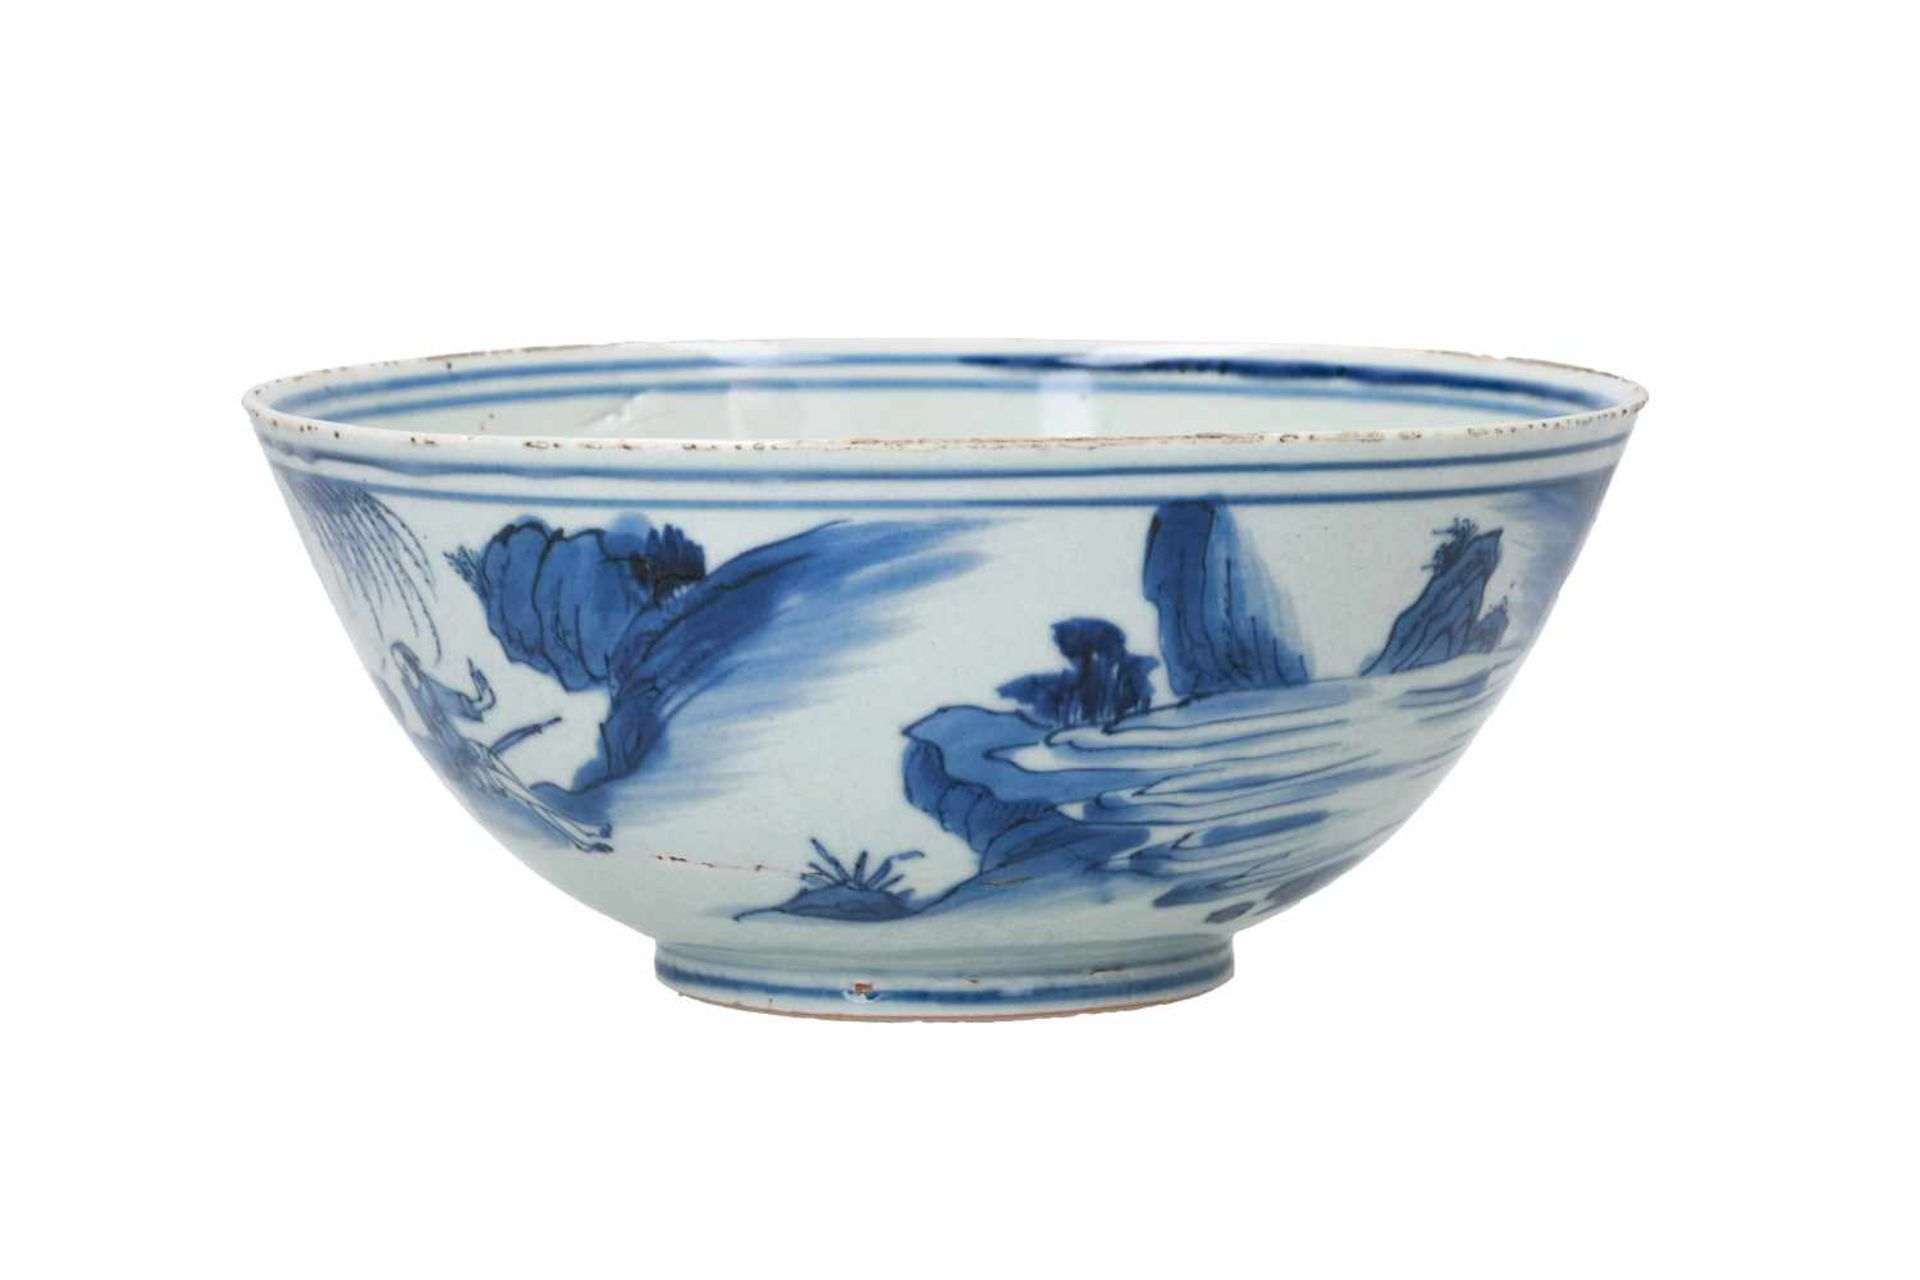 A blue and white porcelain bowl, decorated with a past-master in a mountainous river landscape. - Bild 2 aus 6